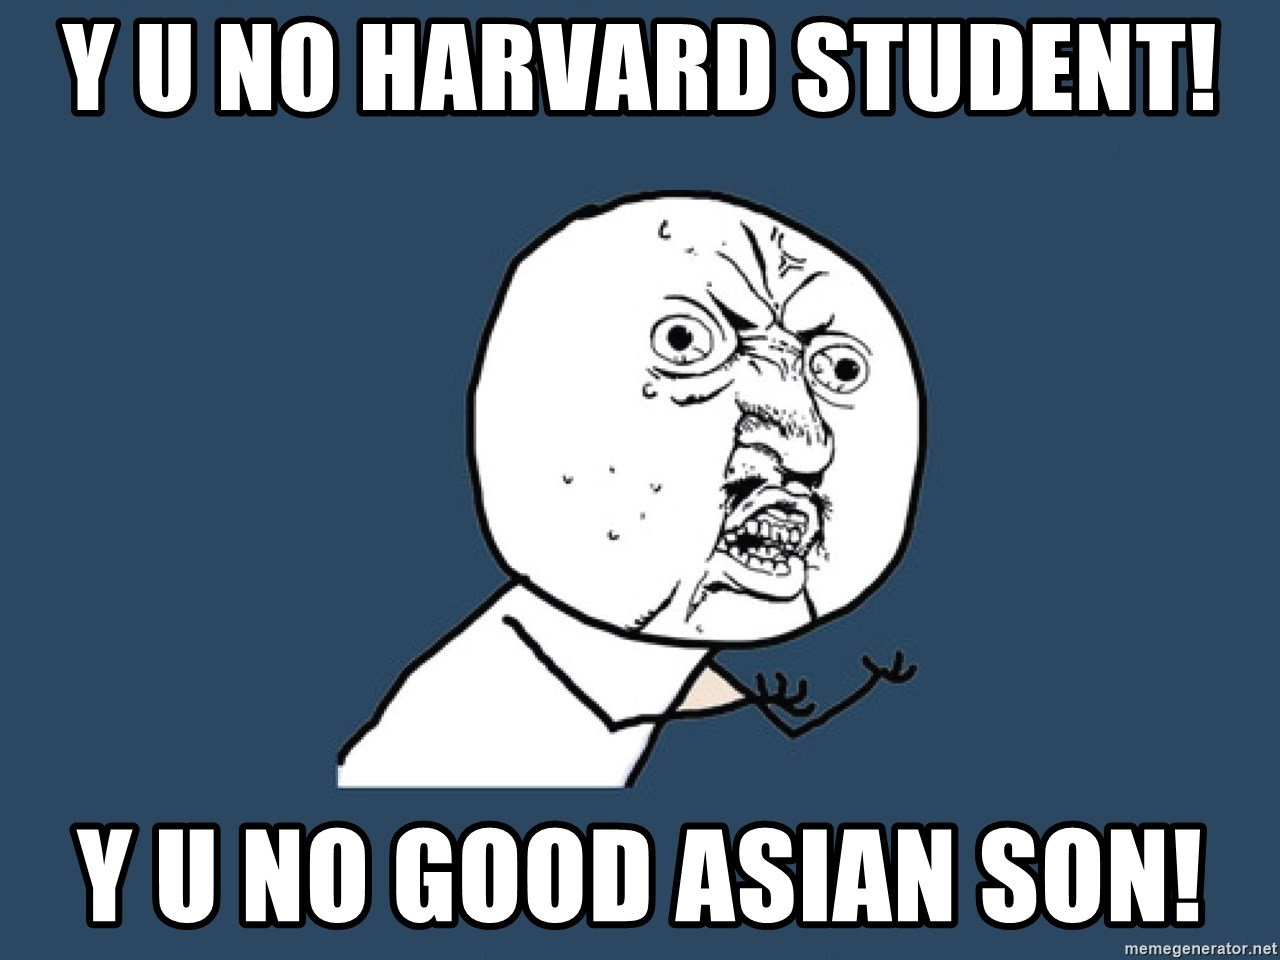 Y U No - y u no harvard student! y u no good asian son!